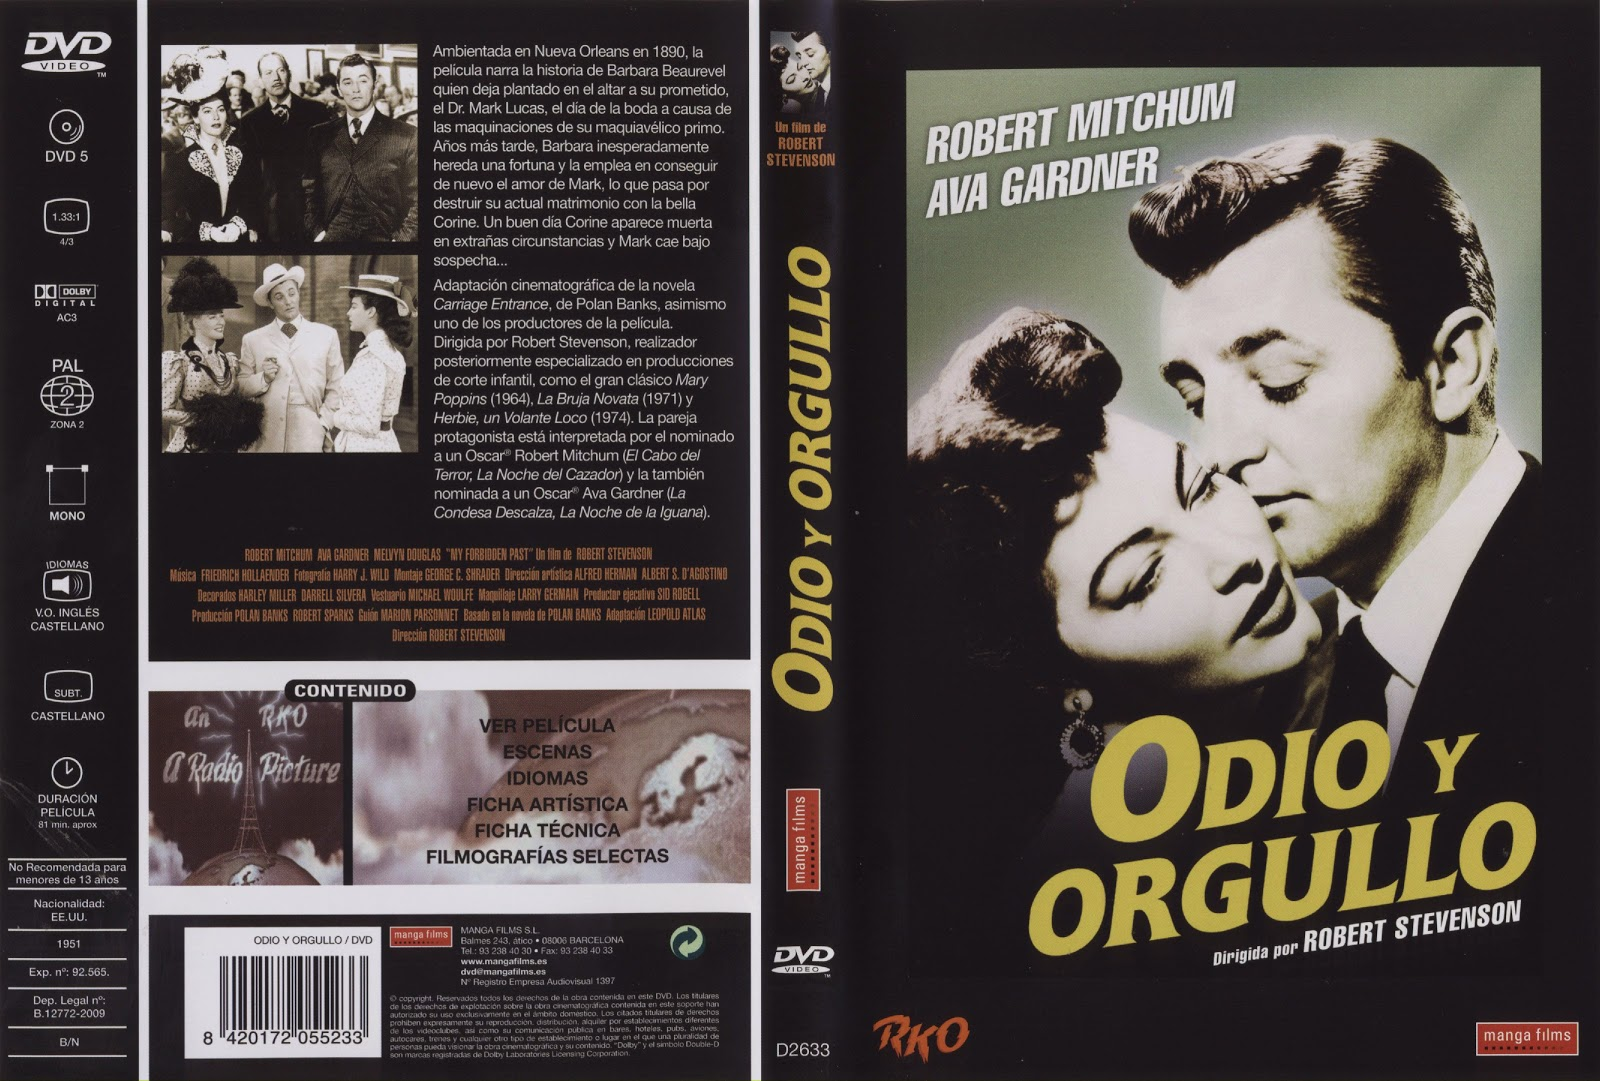 Odio y orgullo (1951 - My Forbidden Past)